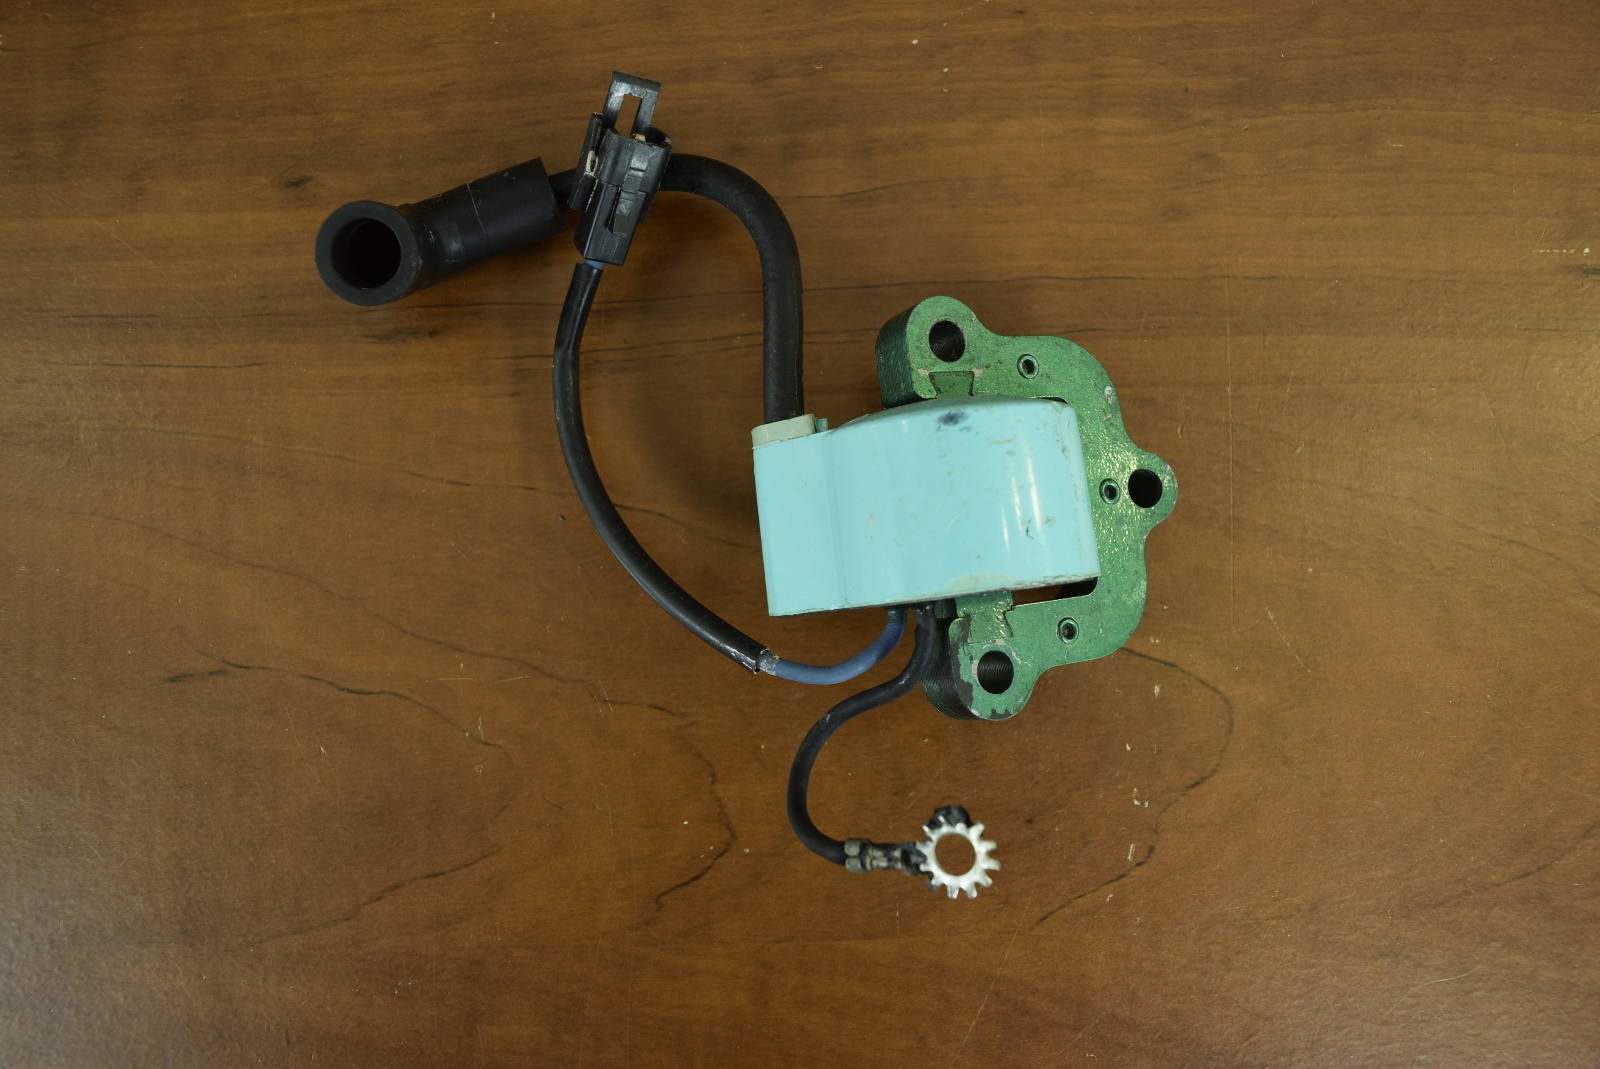 Brp Johnson Evinrude 25 Hp 1975 1976 Ignition Tune Up Kit 172523